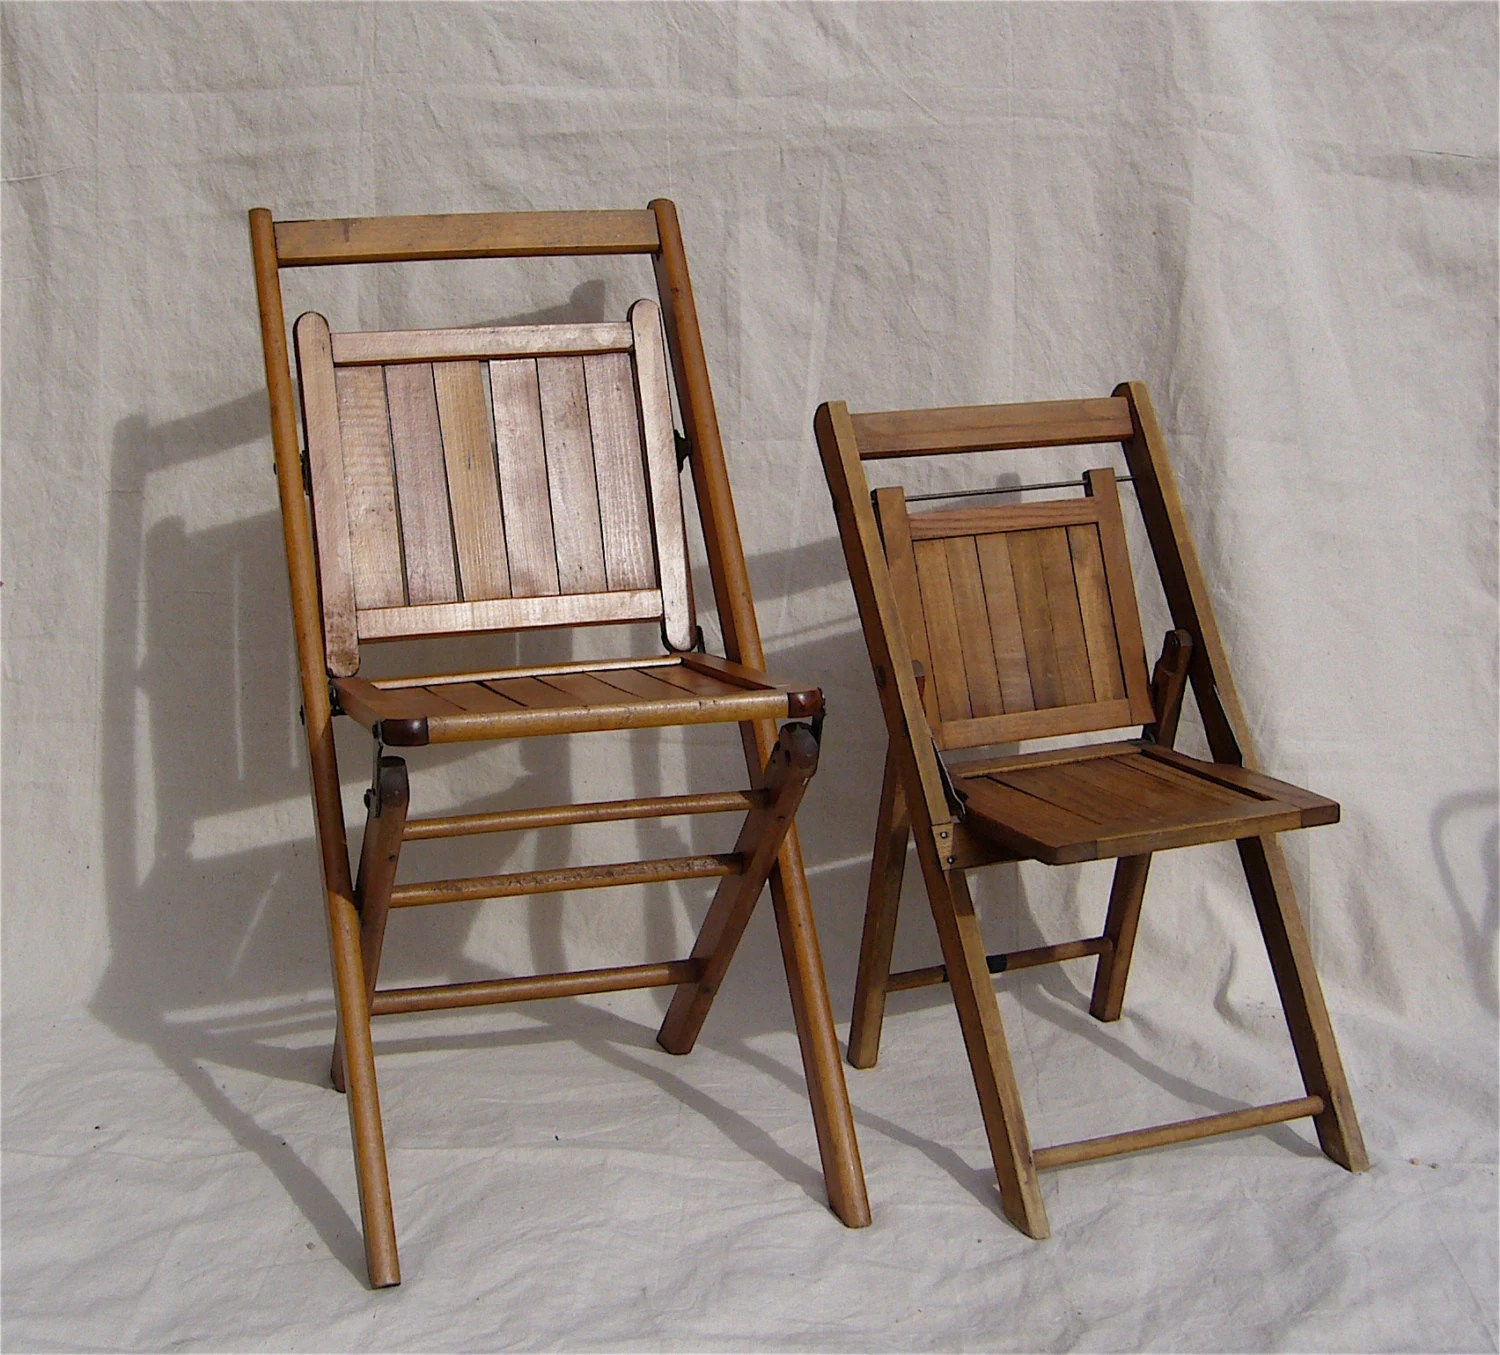 Antique Wooden Chair Antique Folding Chairs Wood Slat Pair Adult And Child Sized C